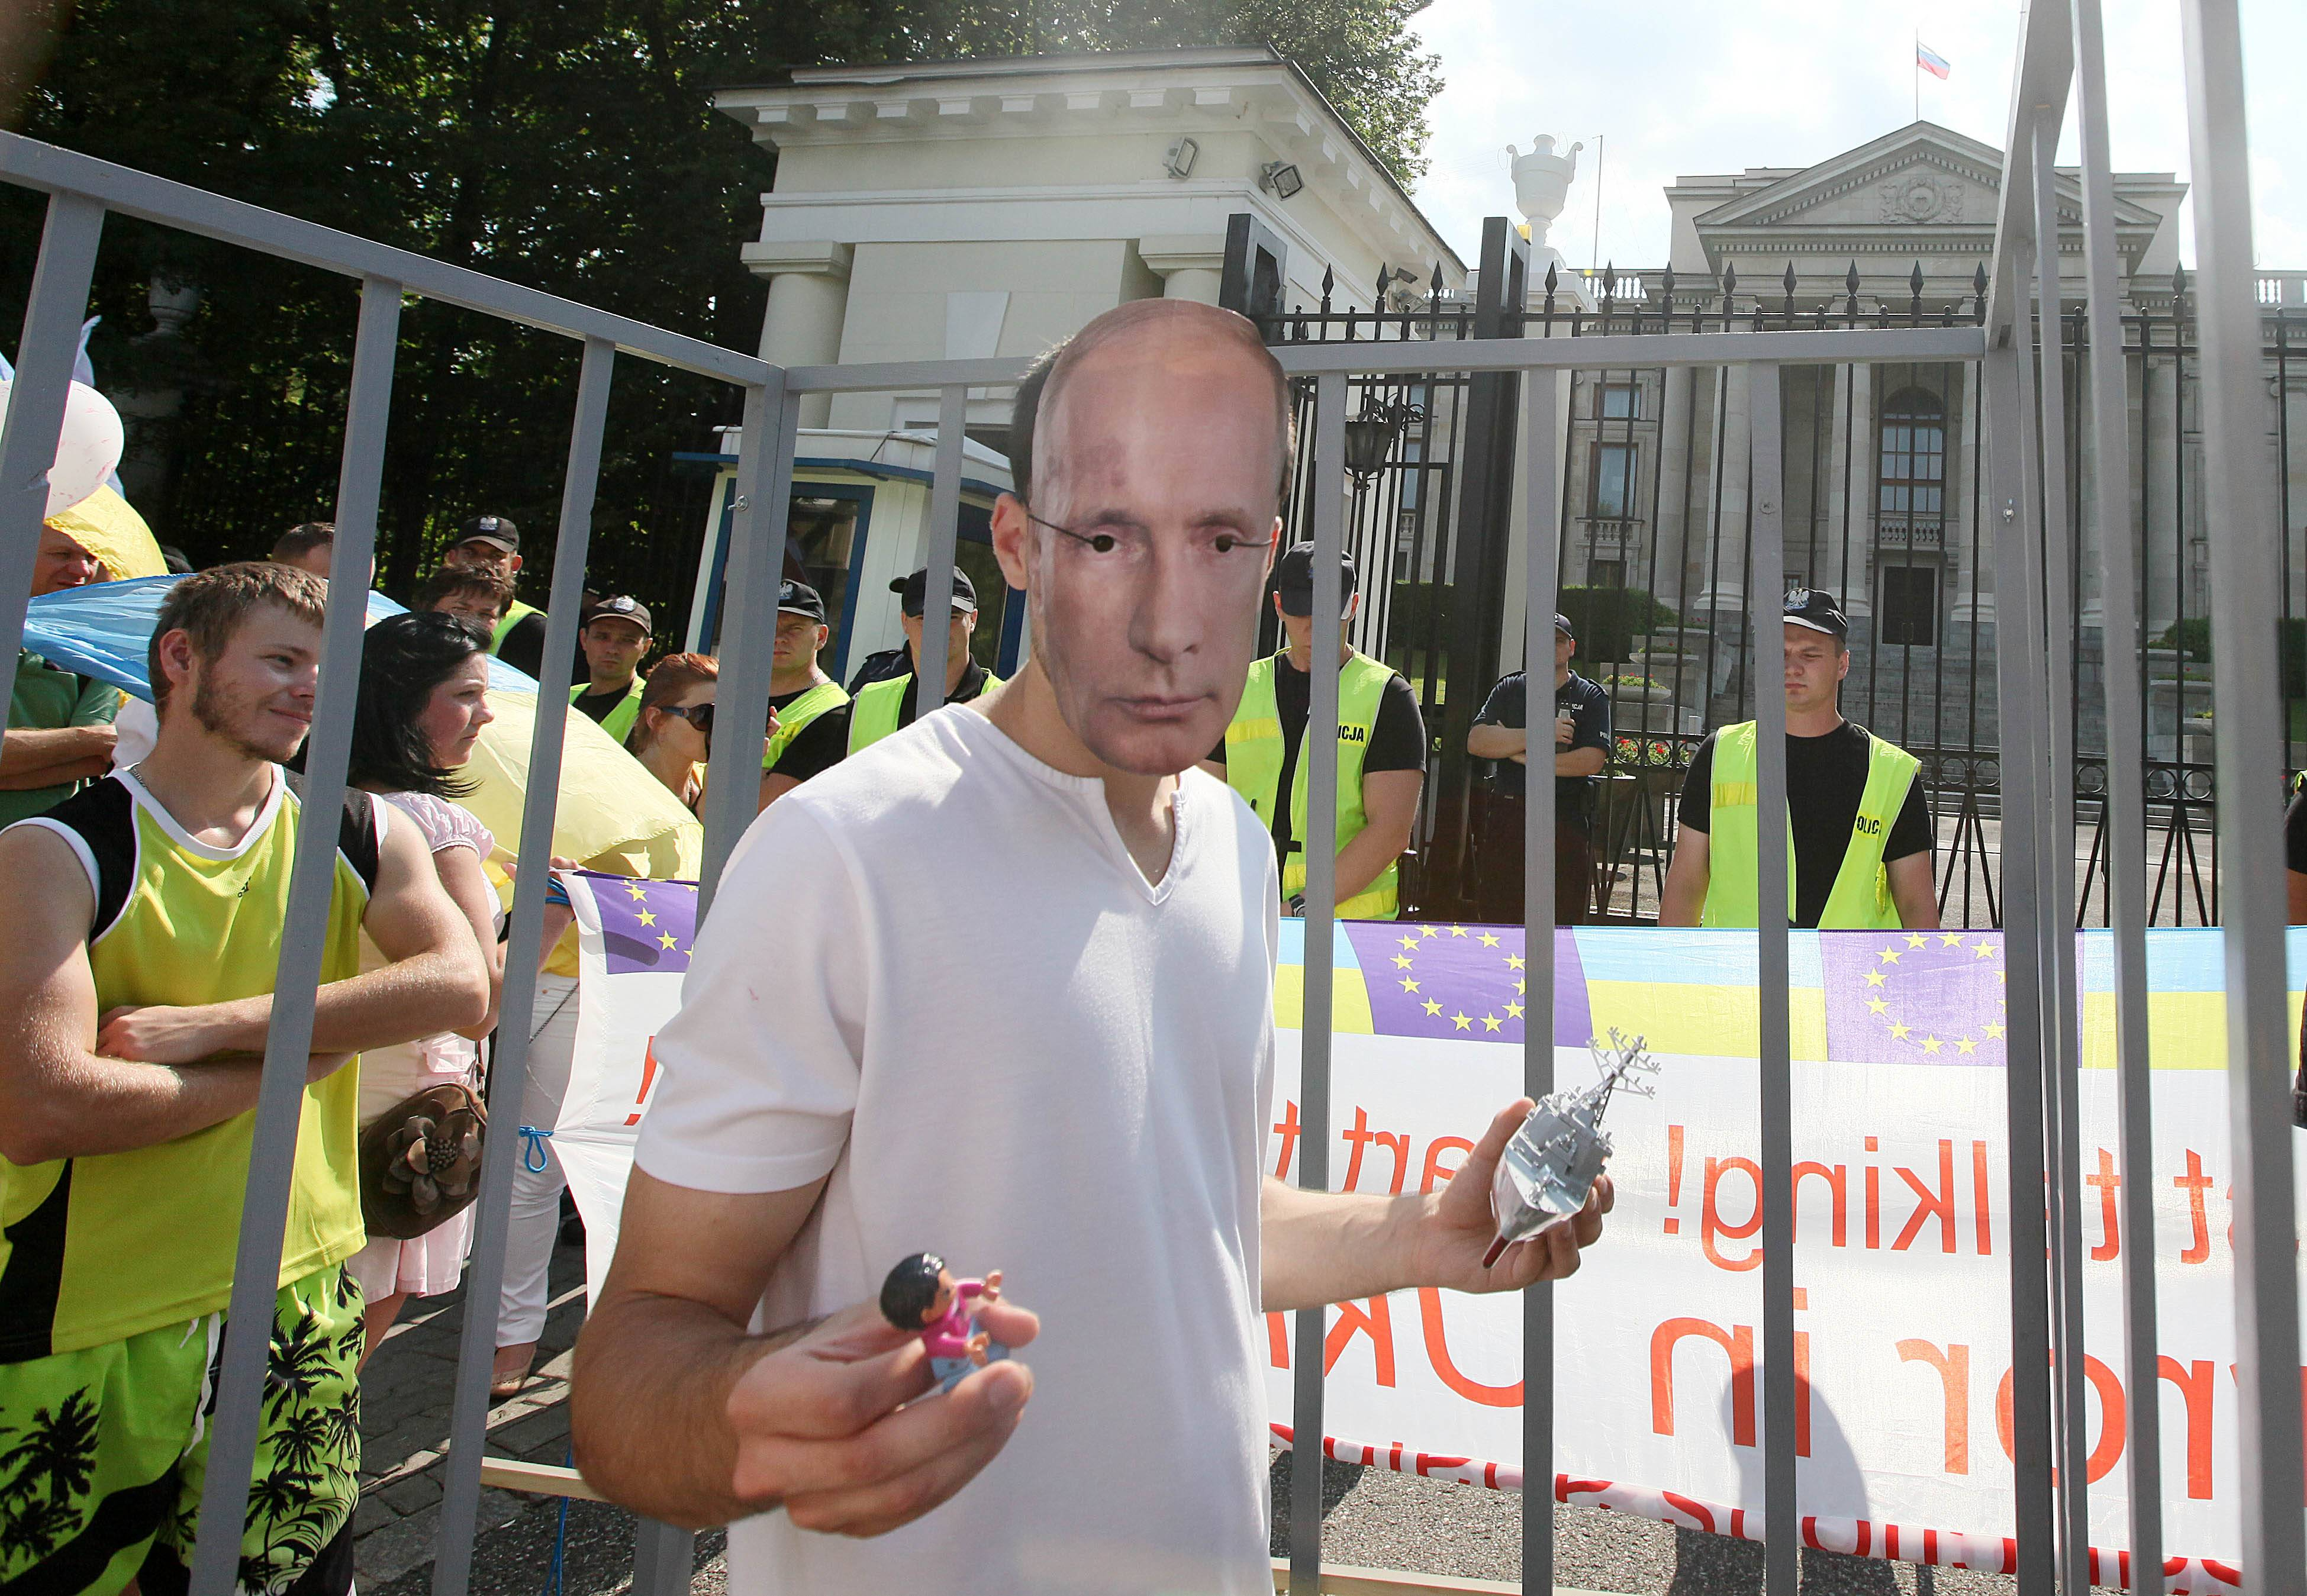 A protester wears a mask  depicting Russian President Vladimir Putin , during a  a protest  against Russia's behavior in the  Ukraine conflict, in front of the Russian Embassy in Warsaw, Poland, on Sunday July 27, 2014. .